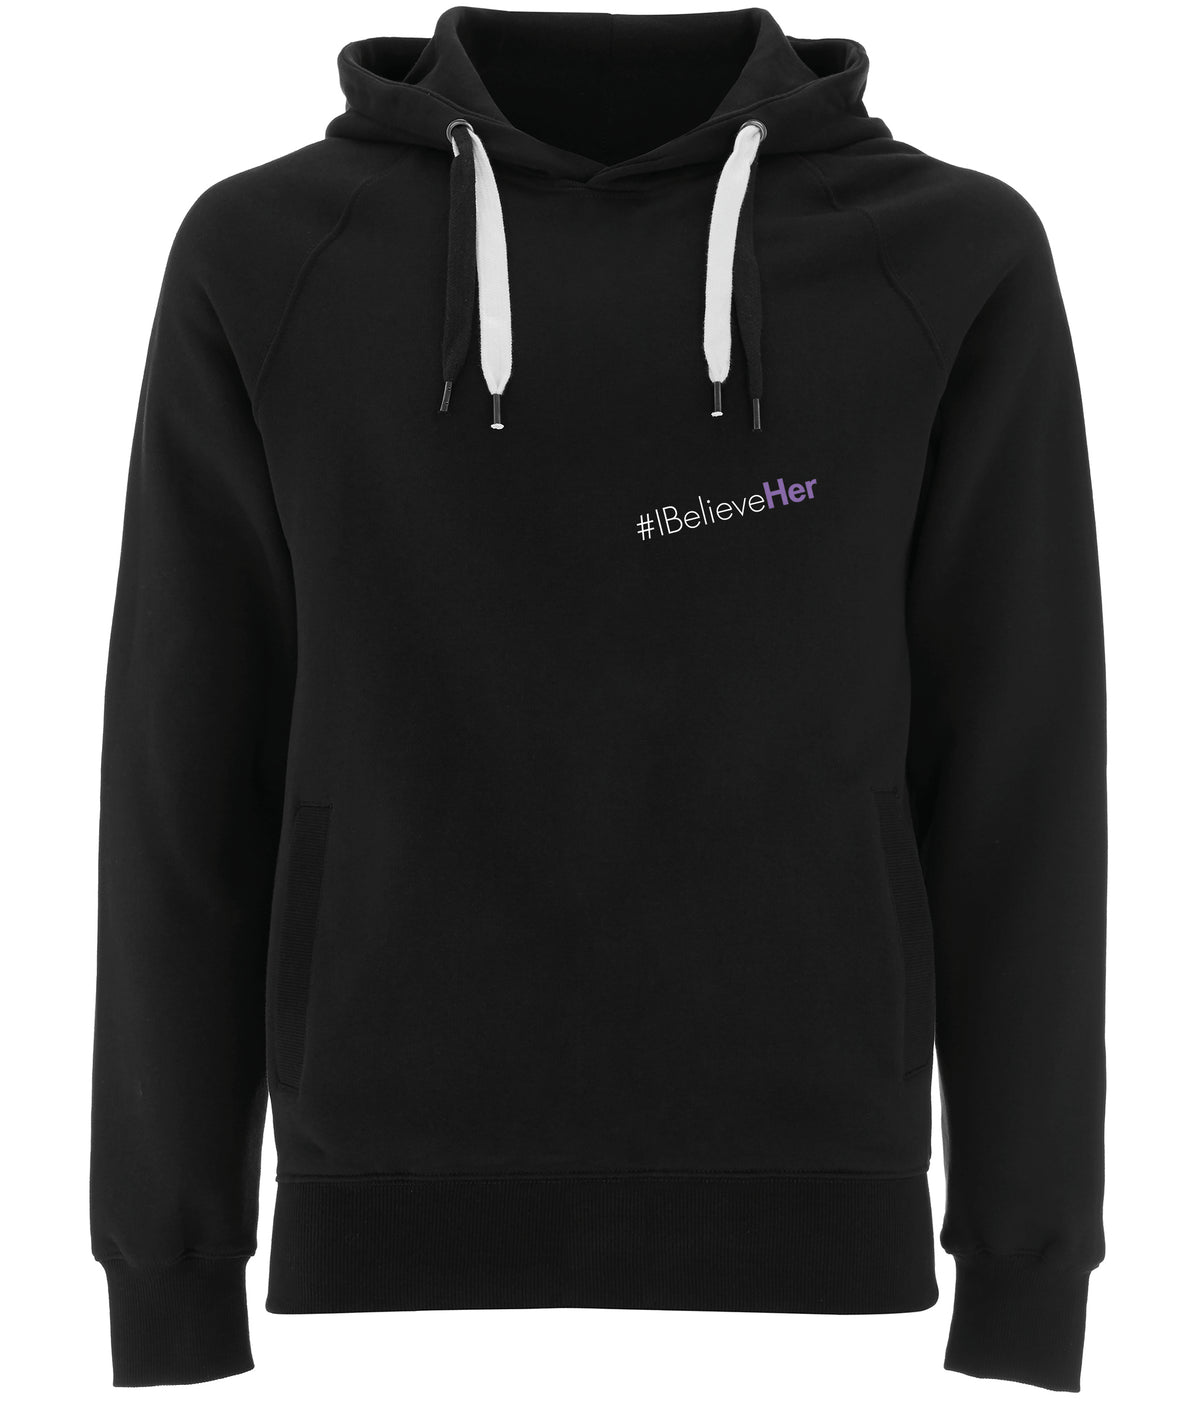 #IBelieveHer Organic Combed Cotton Hoodie Black